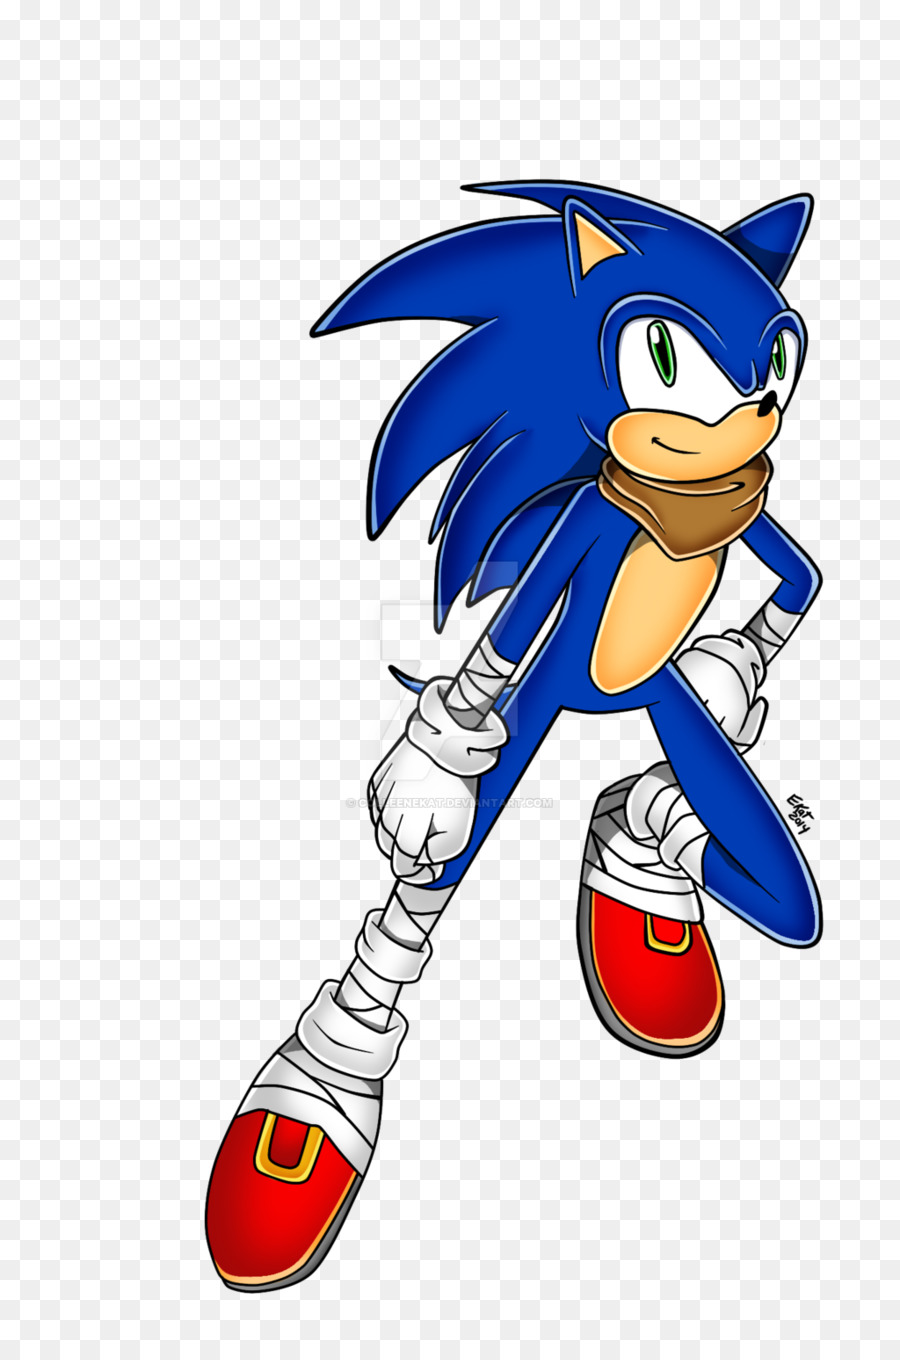 Sonic boom clipart png library Sonic The Hedgehog png download - 1024*1527 - Free ... png library